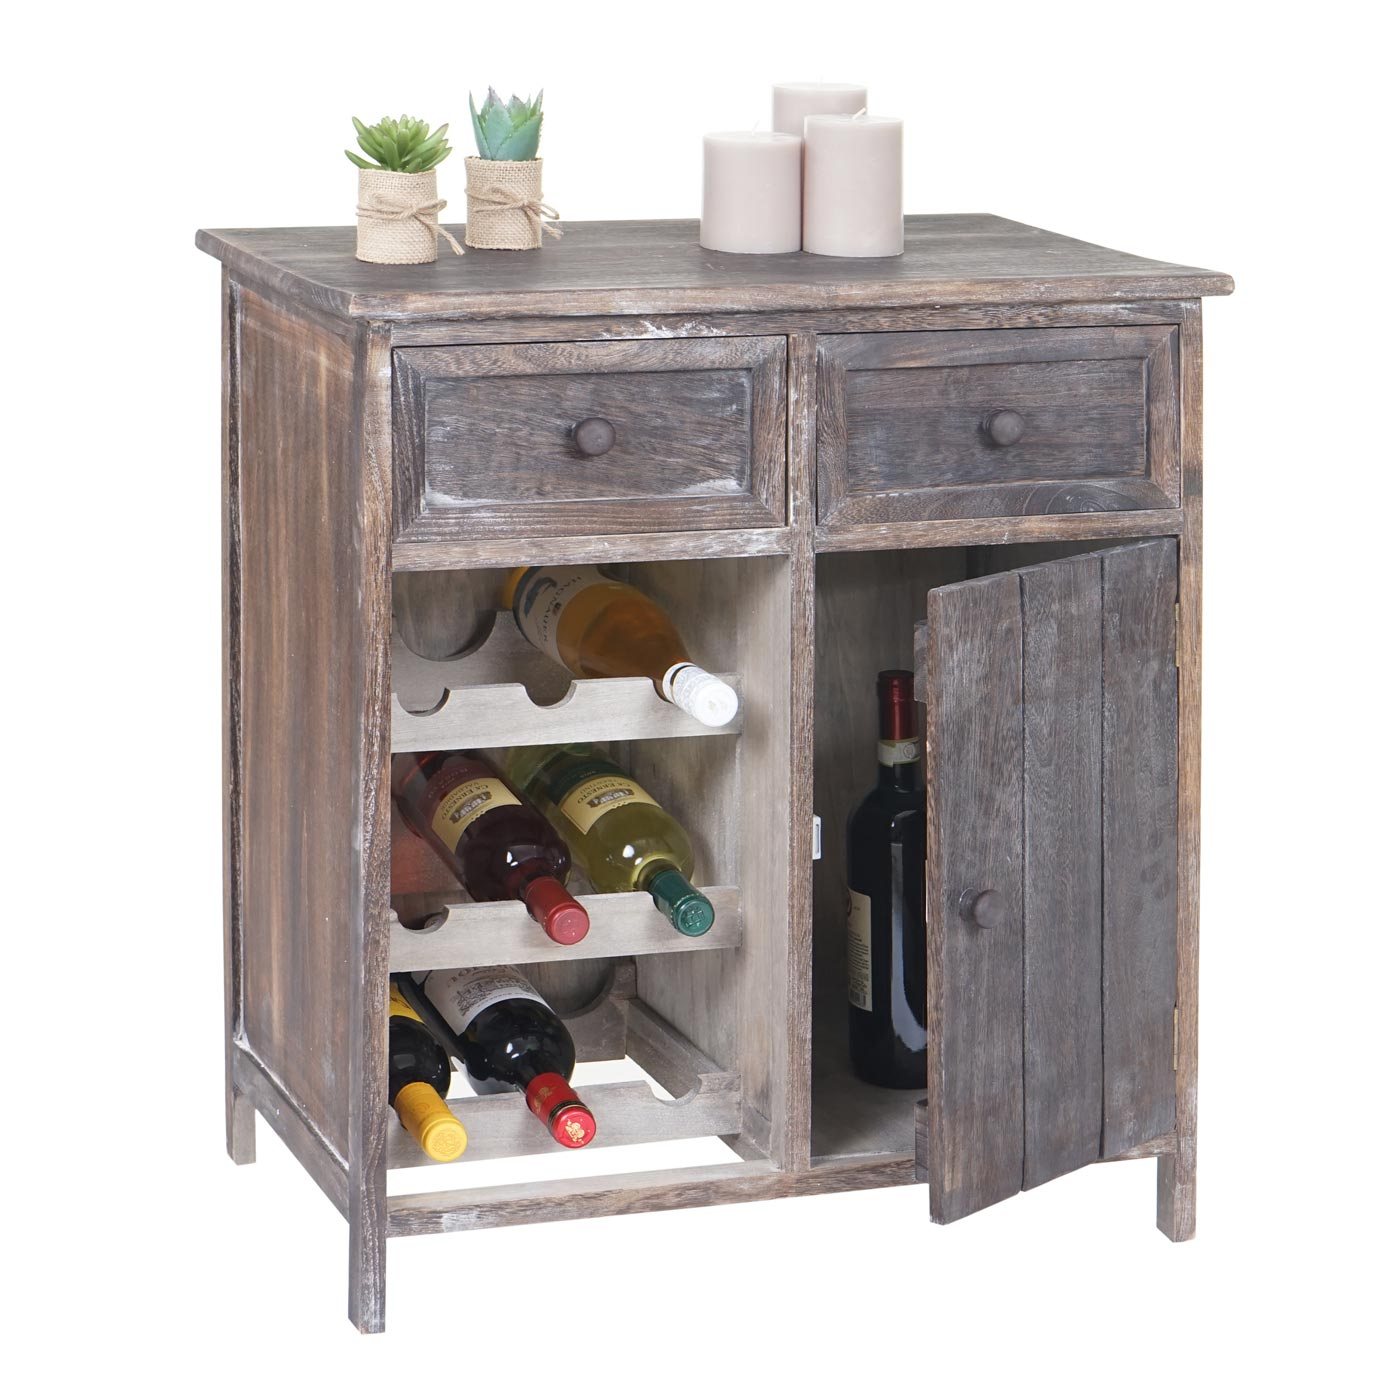 weinregal ithaka flaschenregal kommode regal f r 9 flaschen shabby look vintage braun. Black Bedroom Furniture Sets. Home Design Ideas